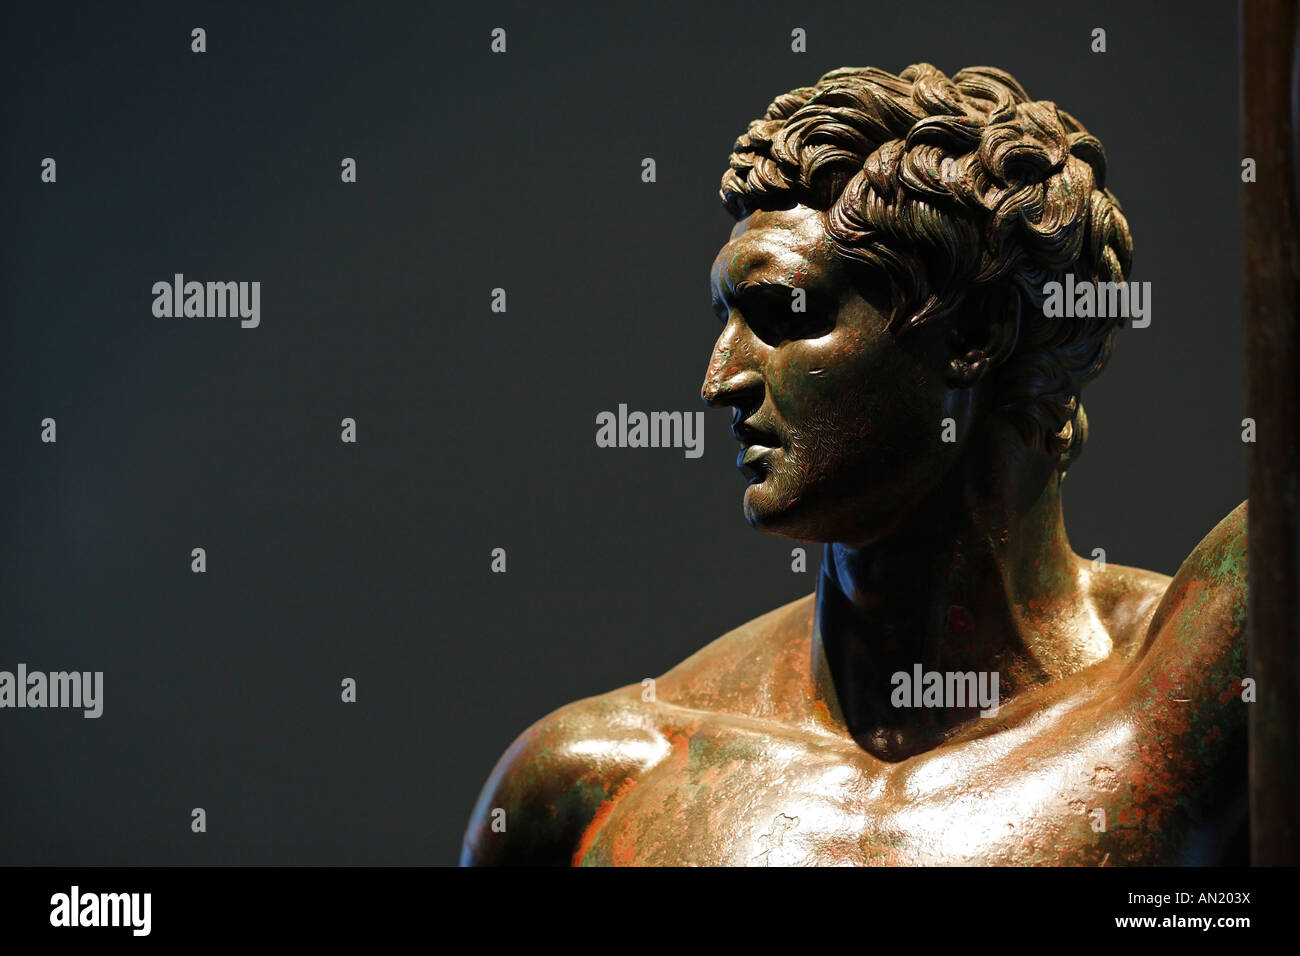 The bronze statue of a Hellenistic prince , Palazzo Massimo alle Terme, Rome, Italy Stock Photo